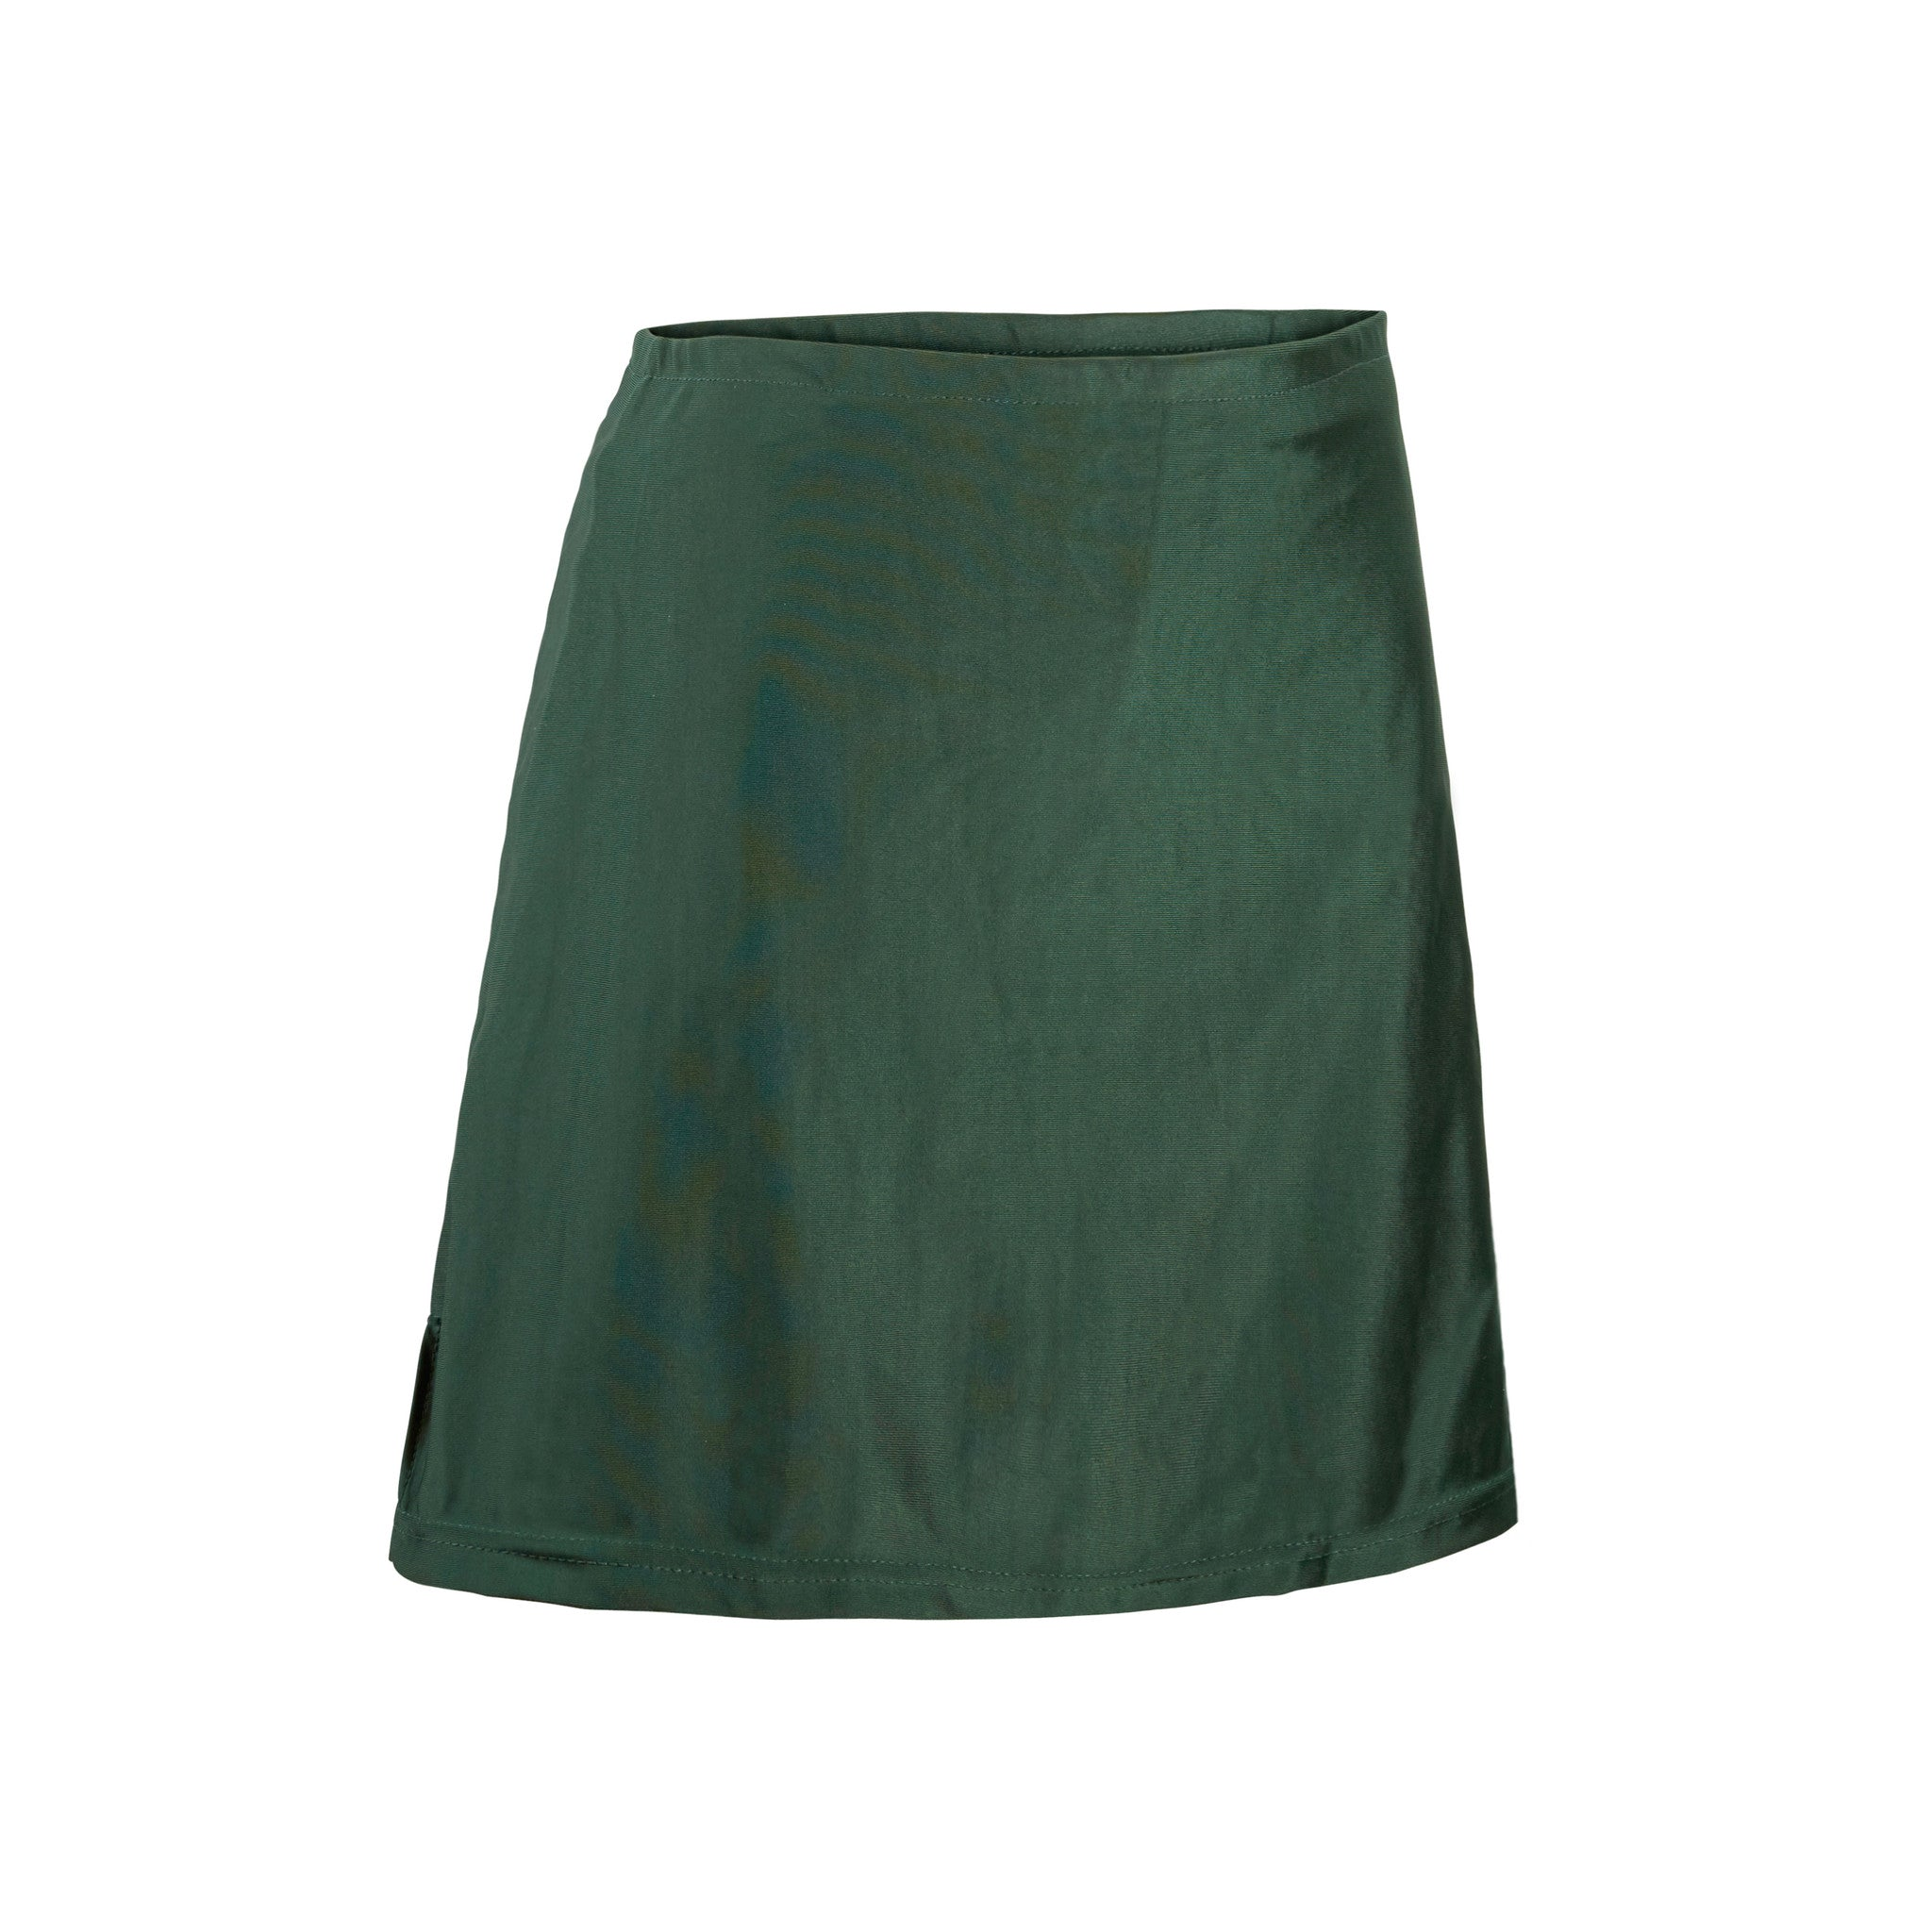 Prep Green Girls Skort